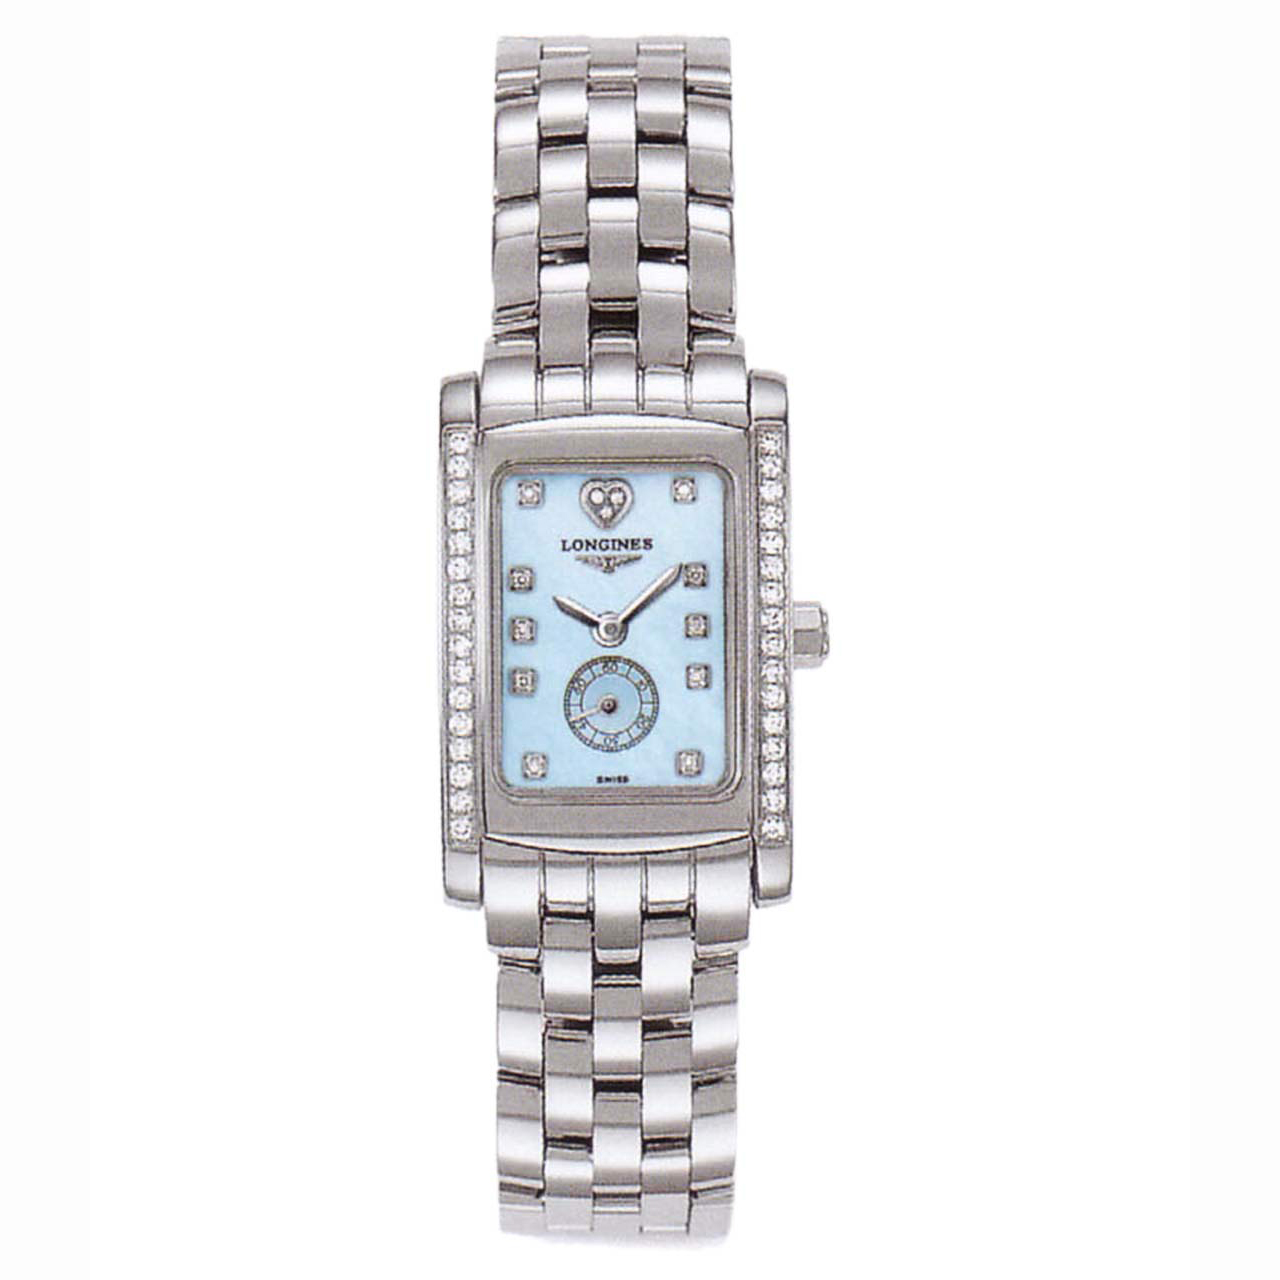 /watches_family_/Longines/Longines-longines-DolceVita-L5-155-0-92-6-Ladies-1.jpg